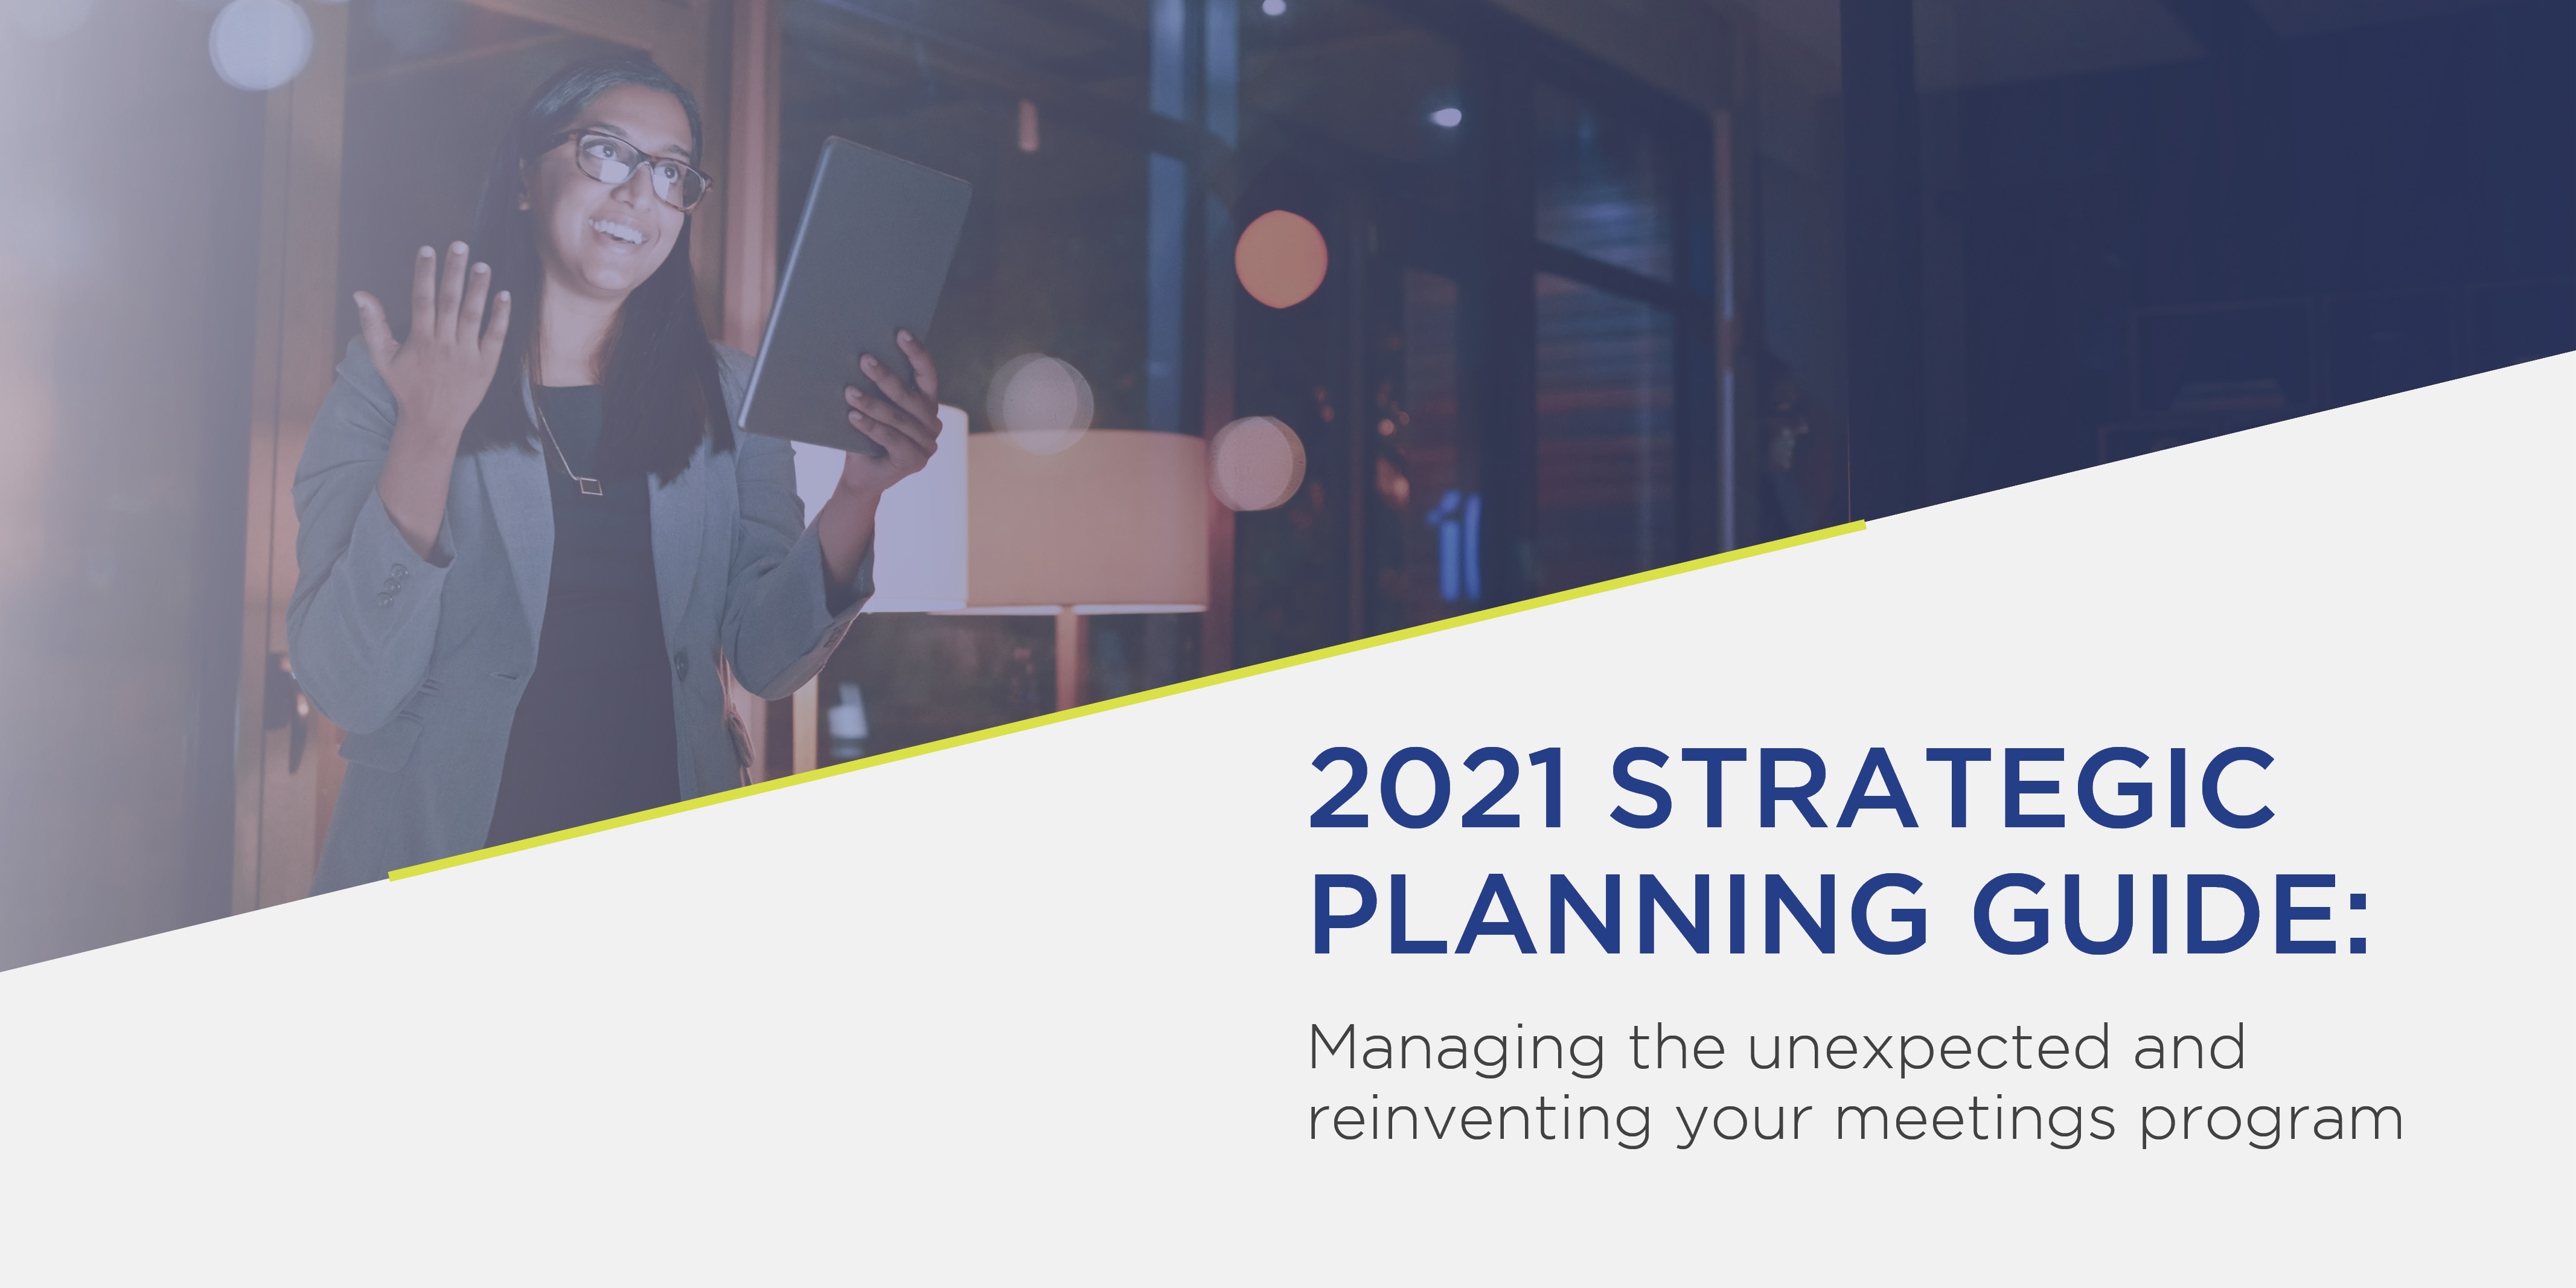 BCD Meetings & Events 2021 Strategic Planning Guide